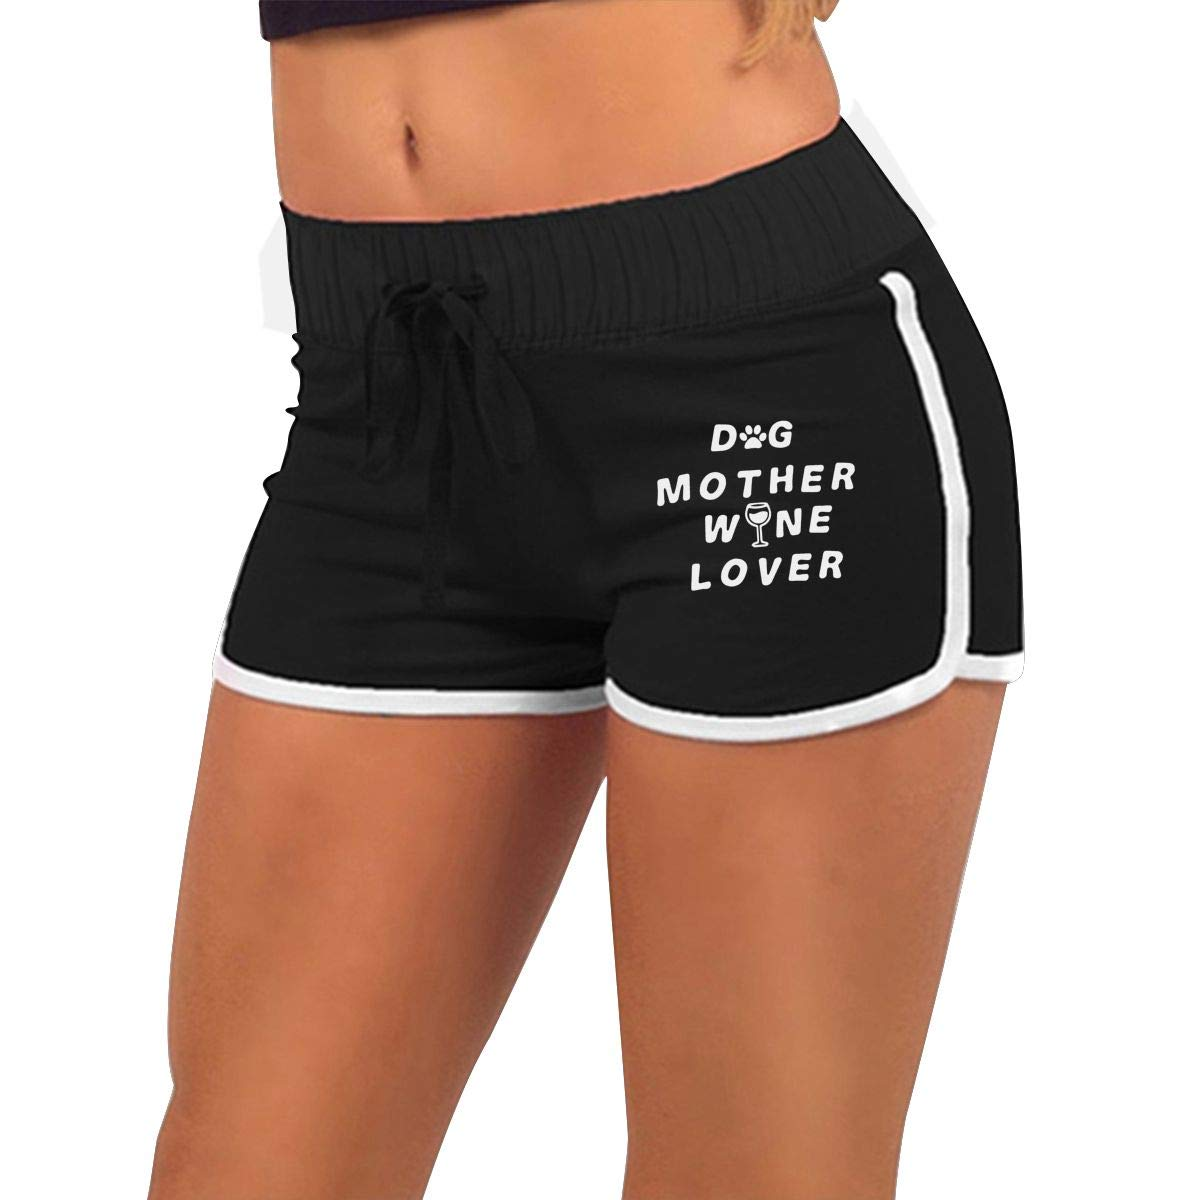 Low Waist Dog Mother Wine Lover Shorts Womens Casual Gym Shorts